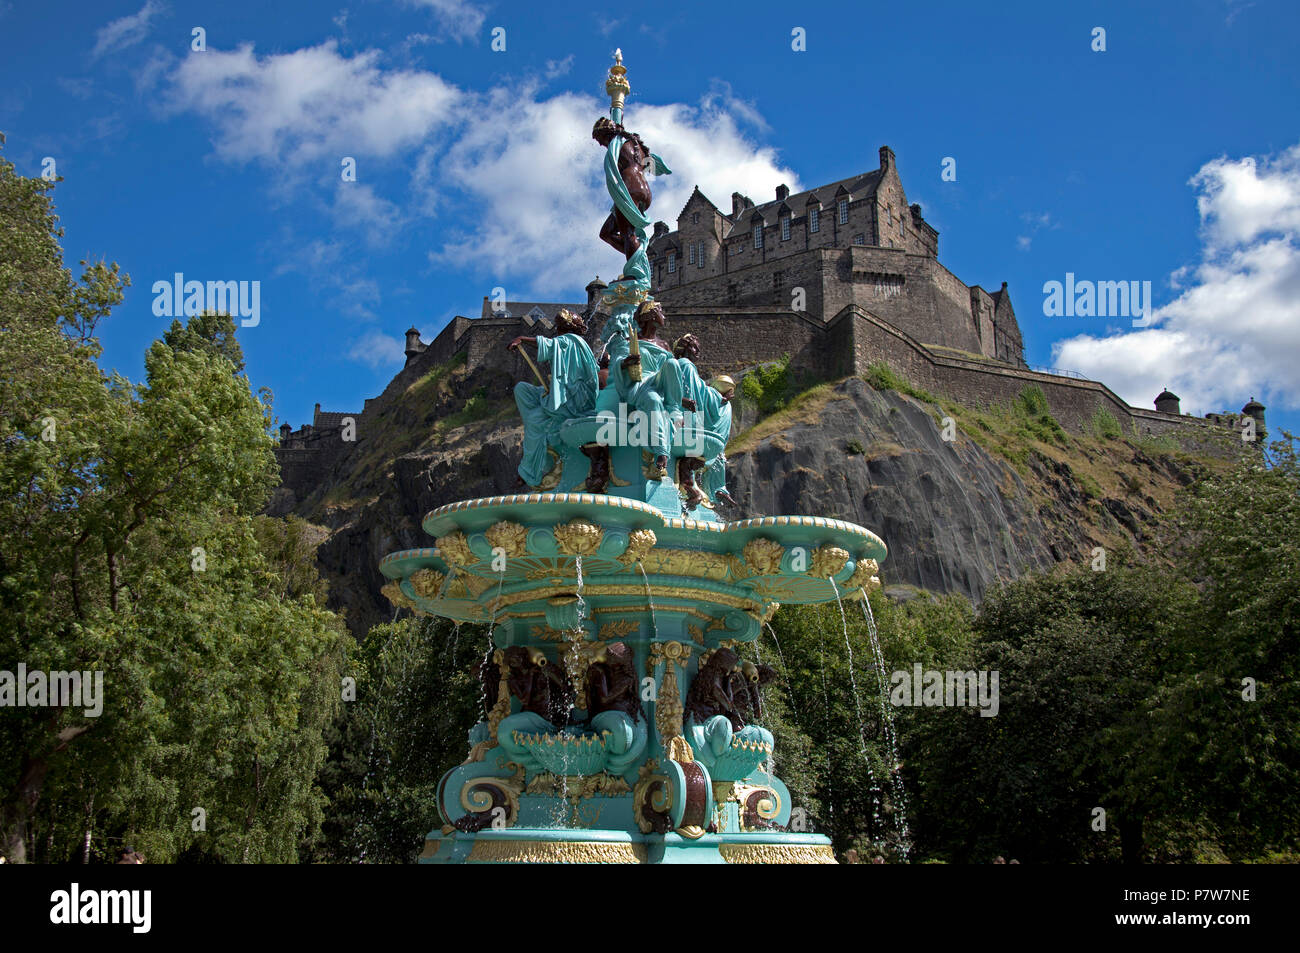 Edinburgh, Scotland, UK. 8 July 2018. Ross Fountain, West Princes Street Gardens switch on day, the fountain water which was switched off in 2010. - Stock Image